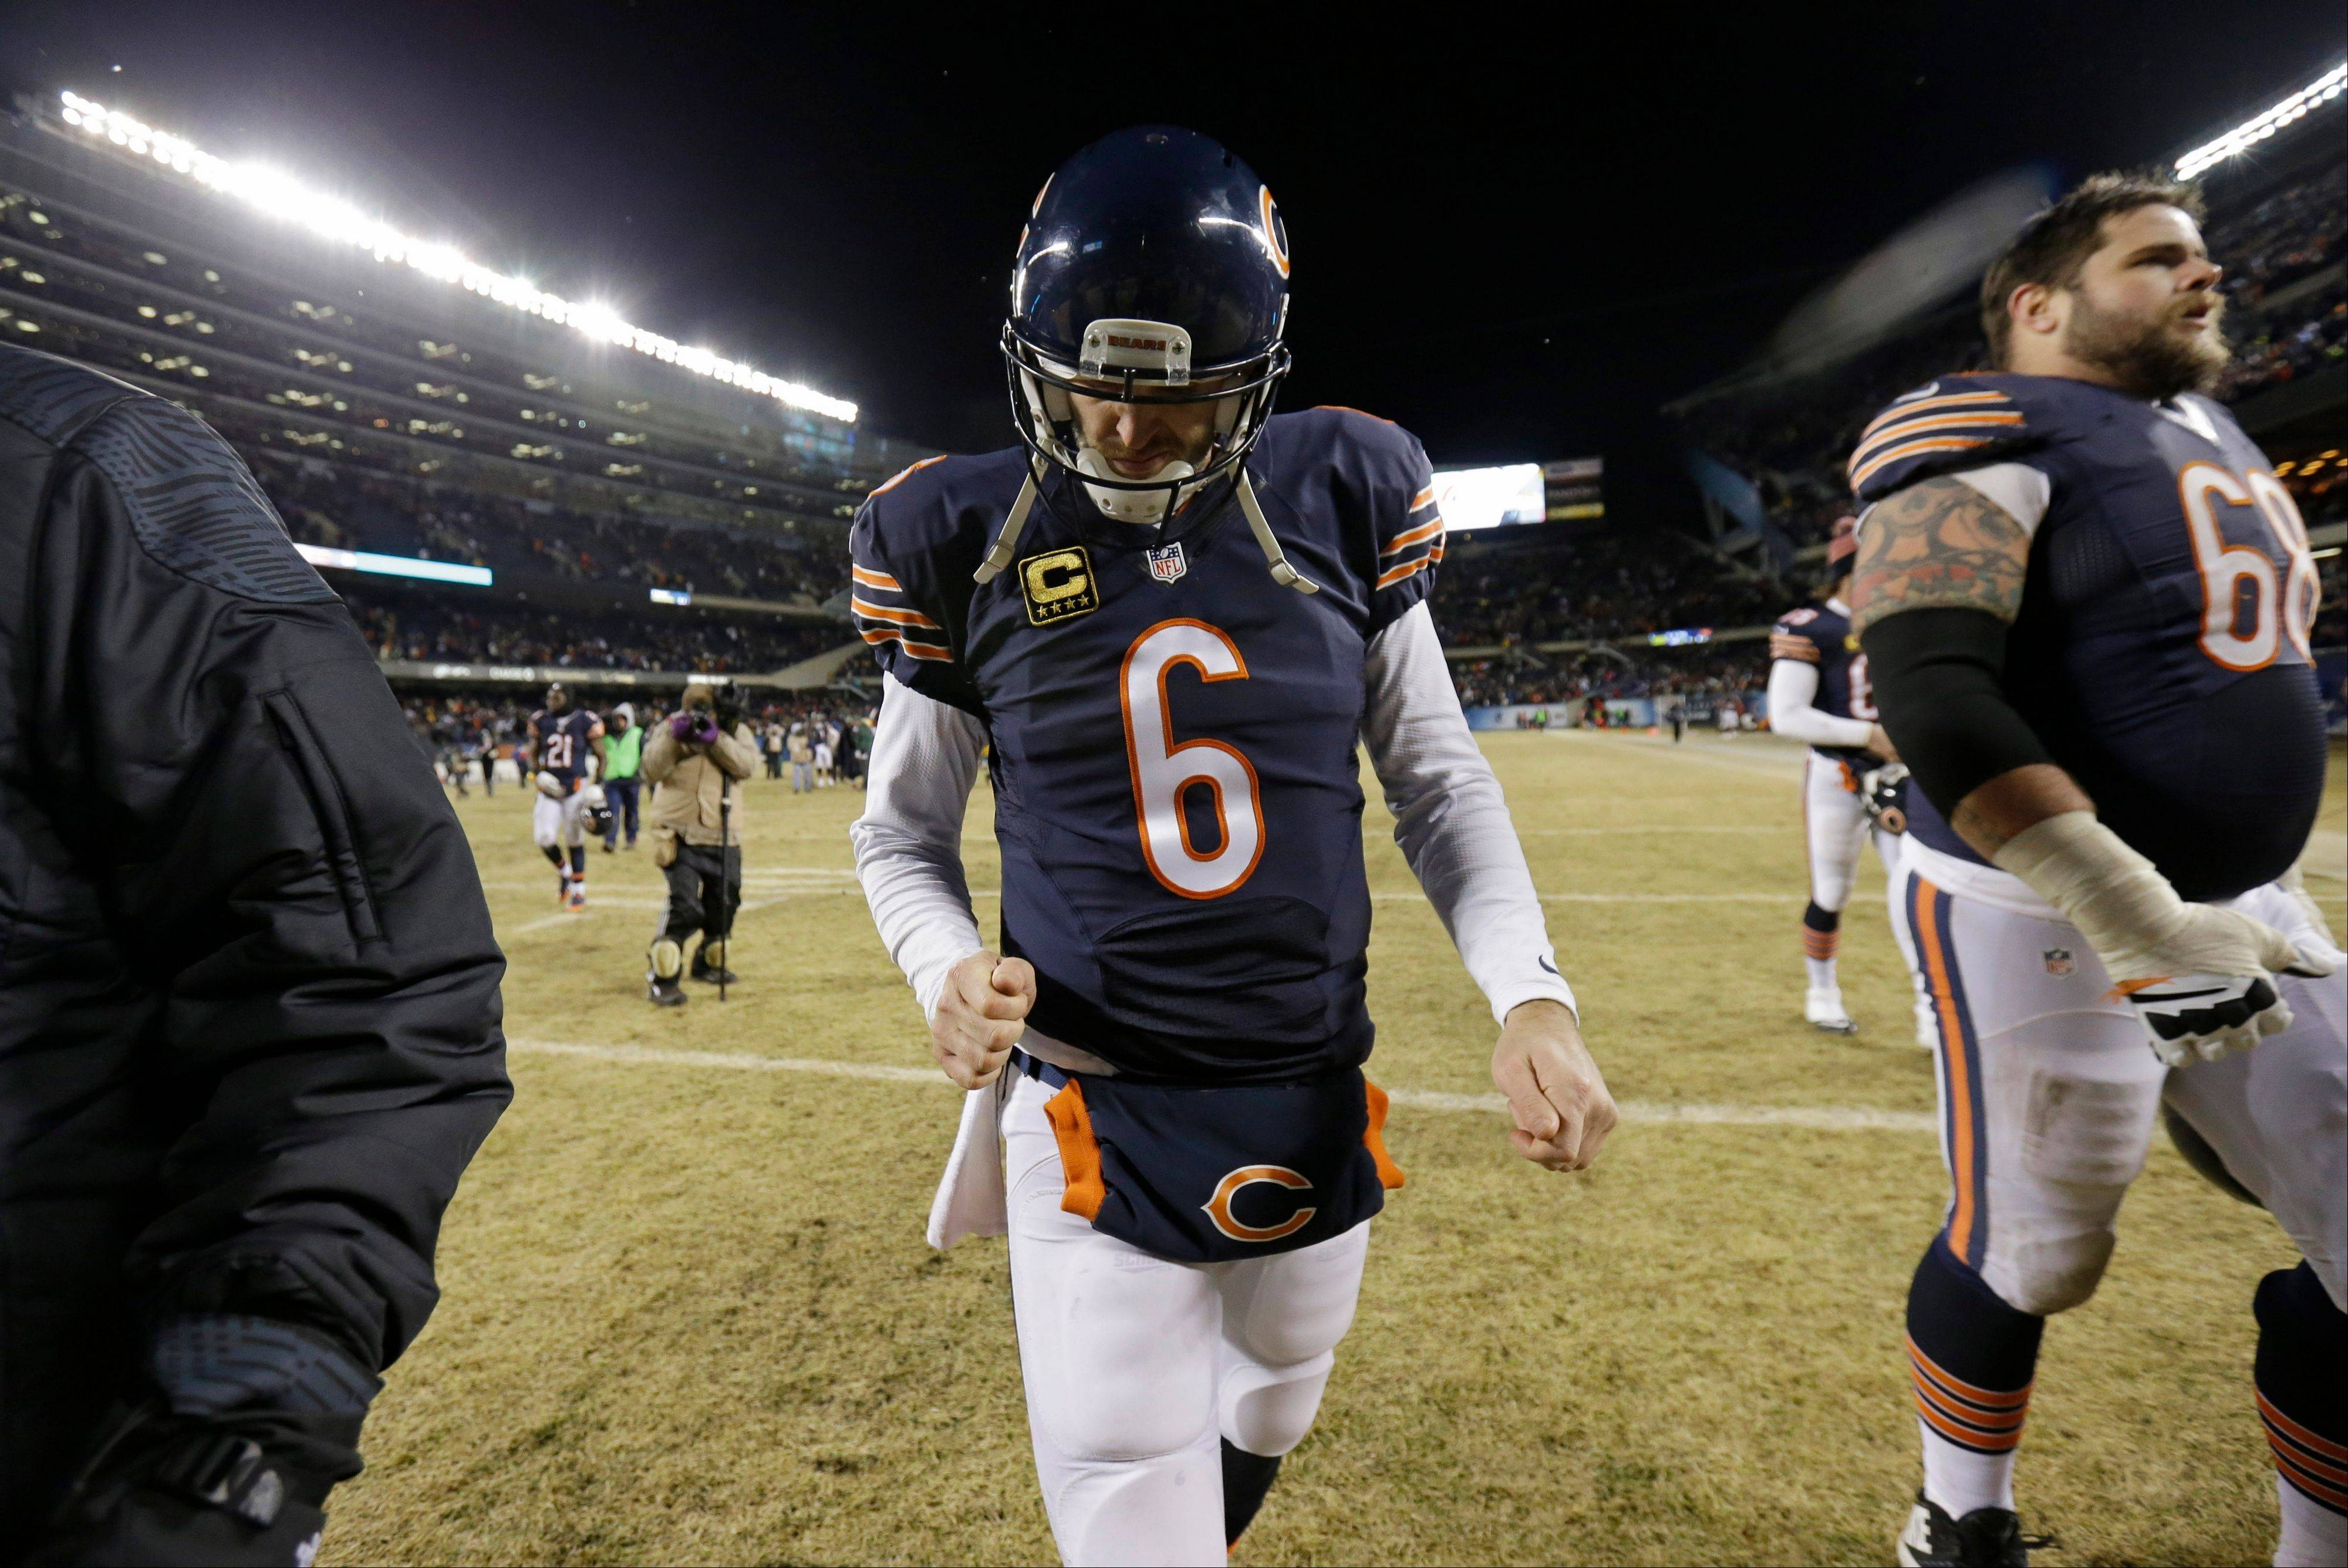 Bears quarterback Jay Cutler walks off the field after the Sunday's 33-28 loss to Green Bay.